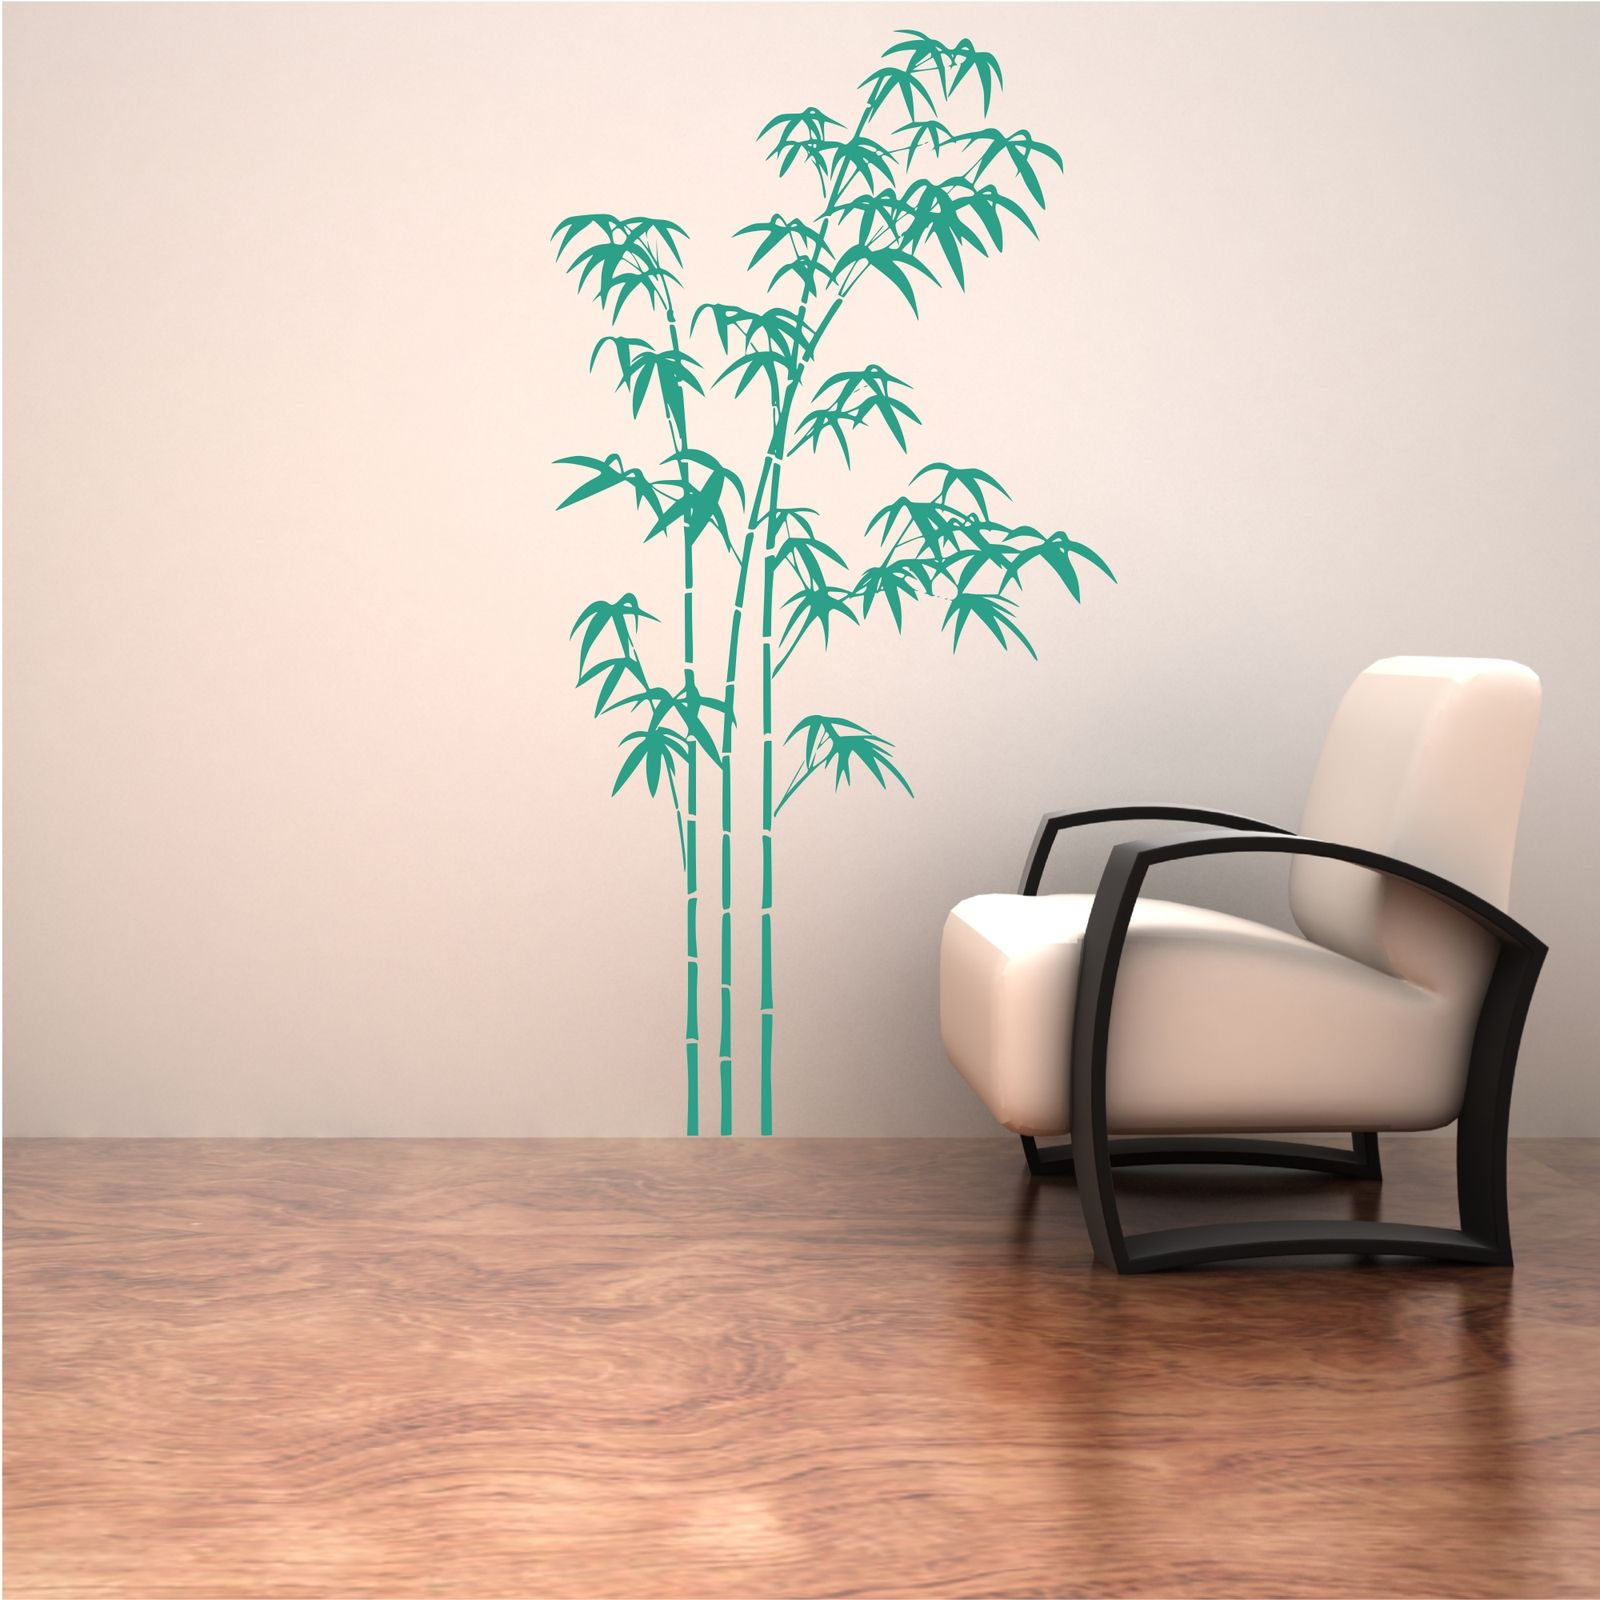 bamboo tree grass wild jungle wall sticker decal stencil vinyl transfer wsd665 ebay. Black Bedroom Furniture Sets. Home Design Ideas